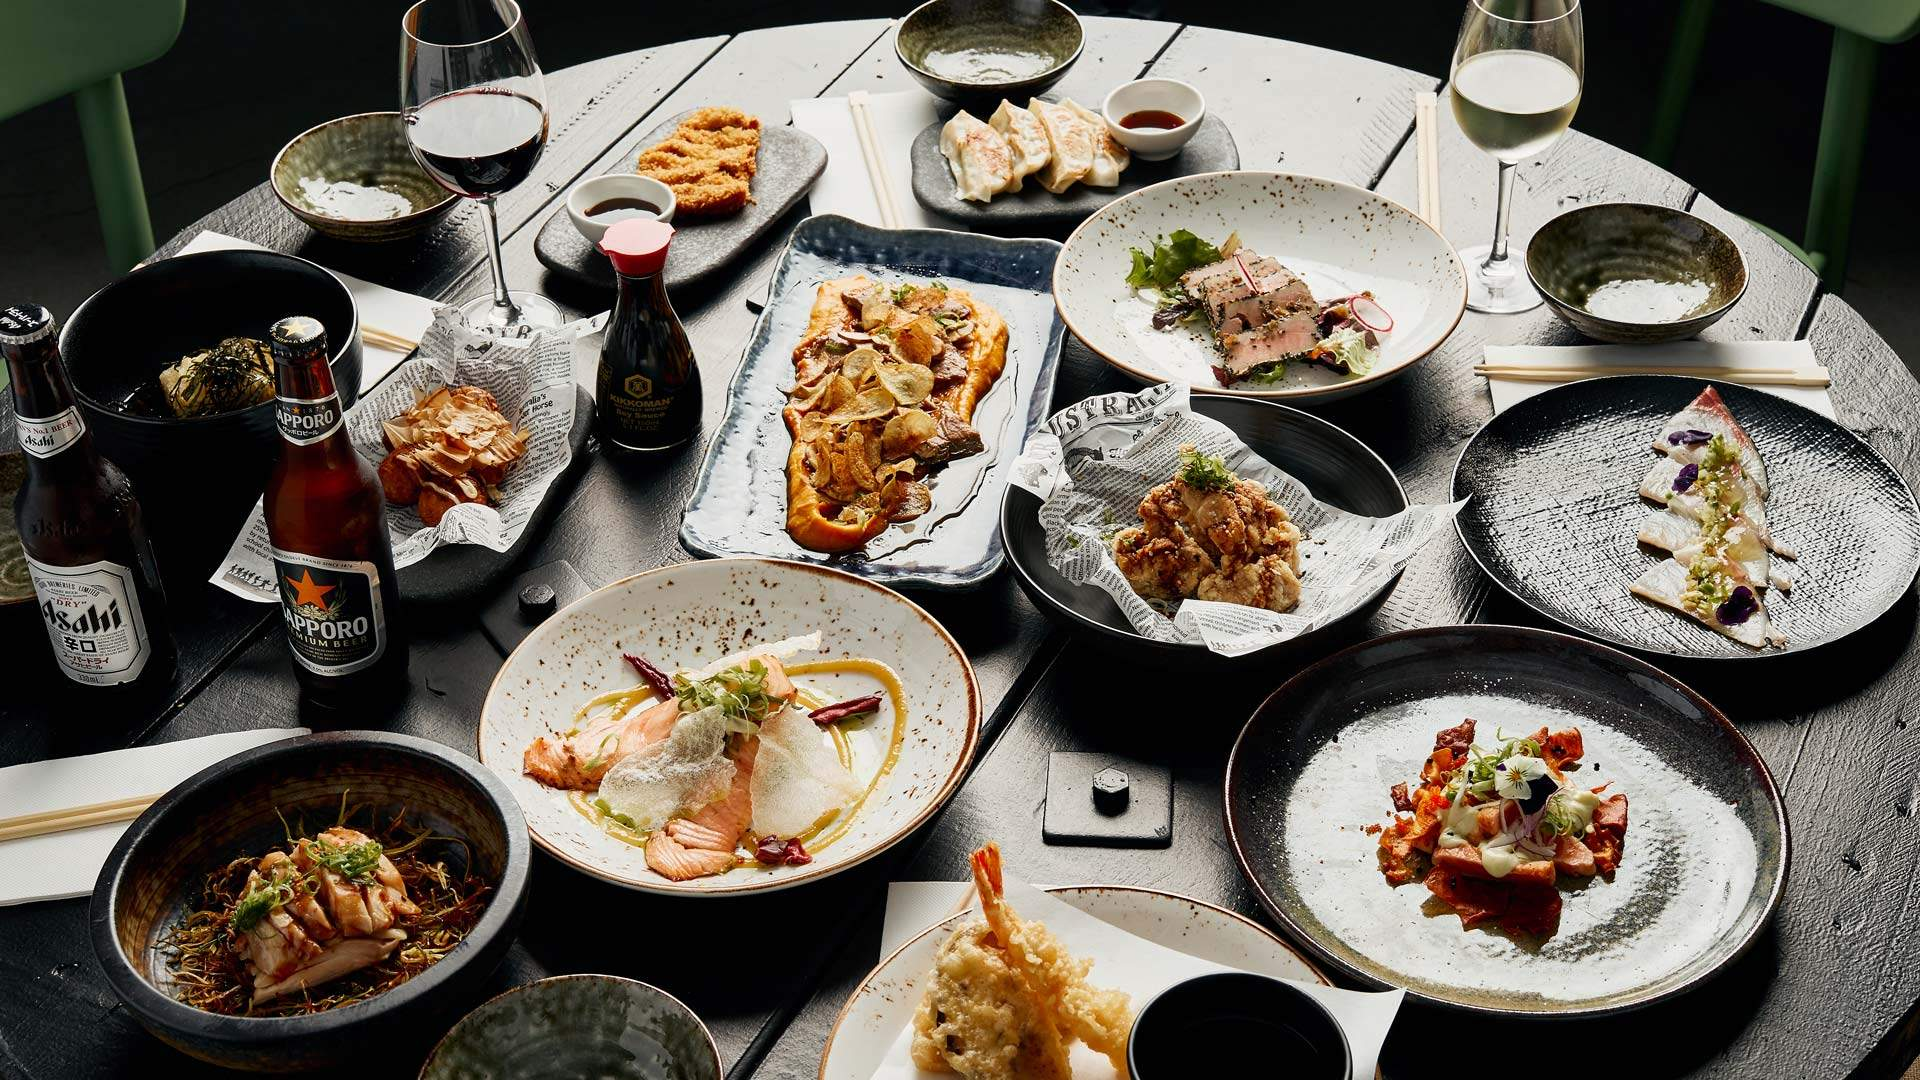 Grand Lafayette Is Prahran's New All-Day Eatery Serving Up $33 All-You-Can-Eat Japanese Feasts